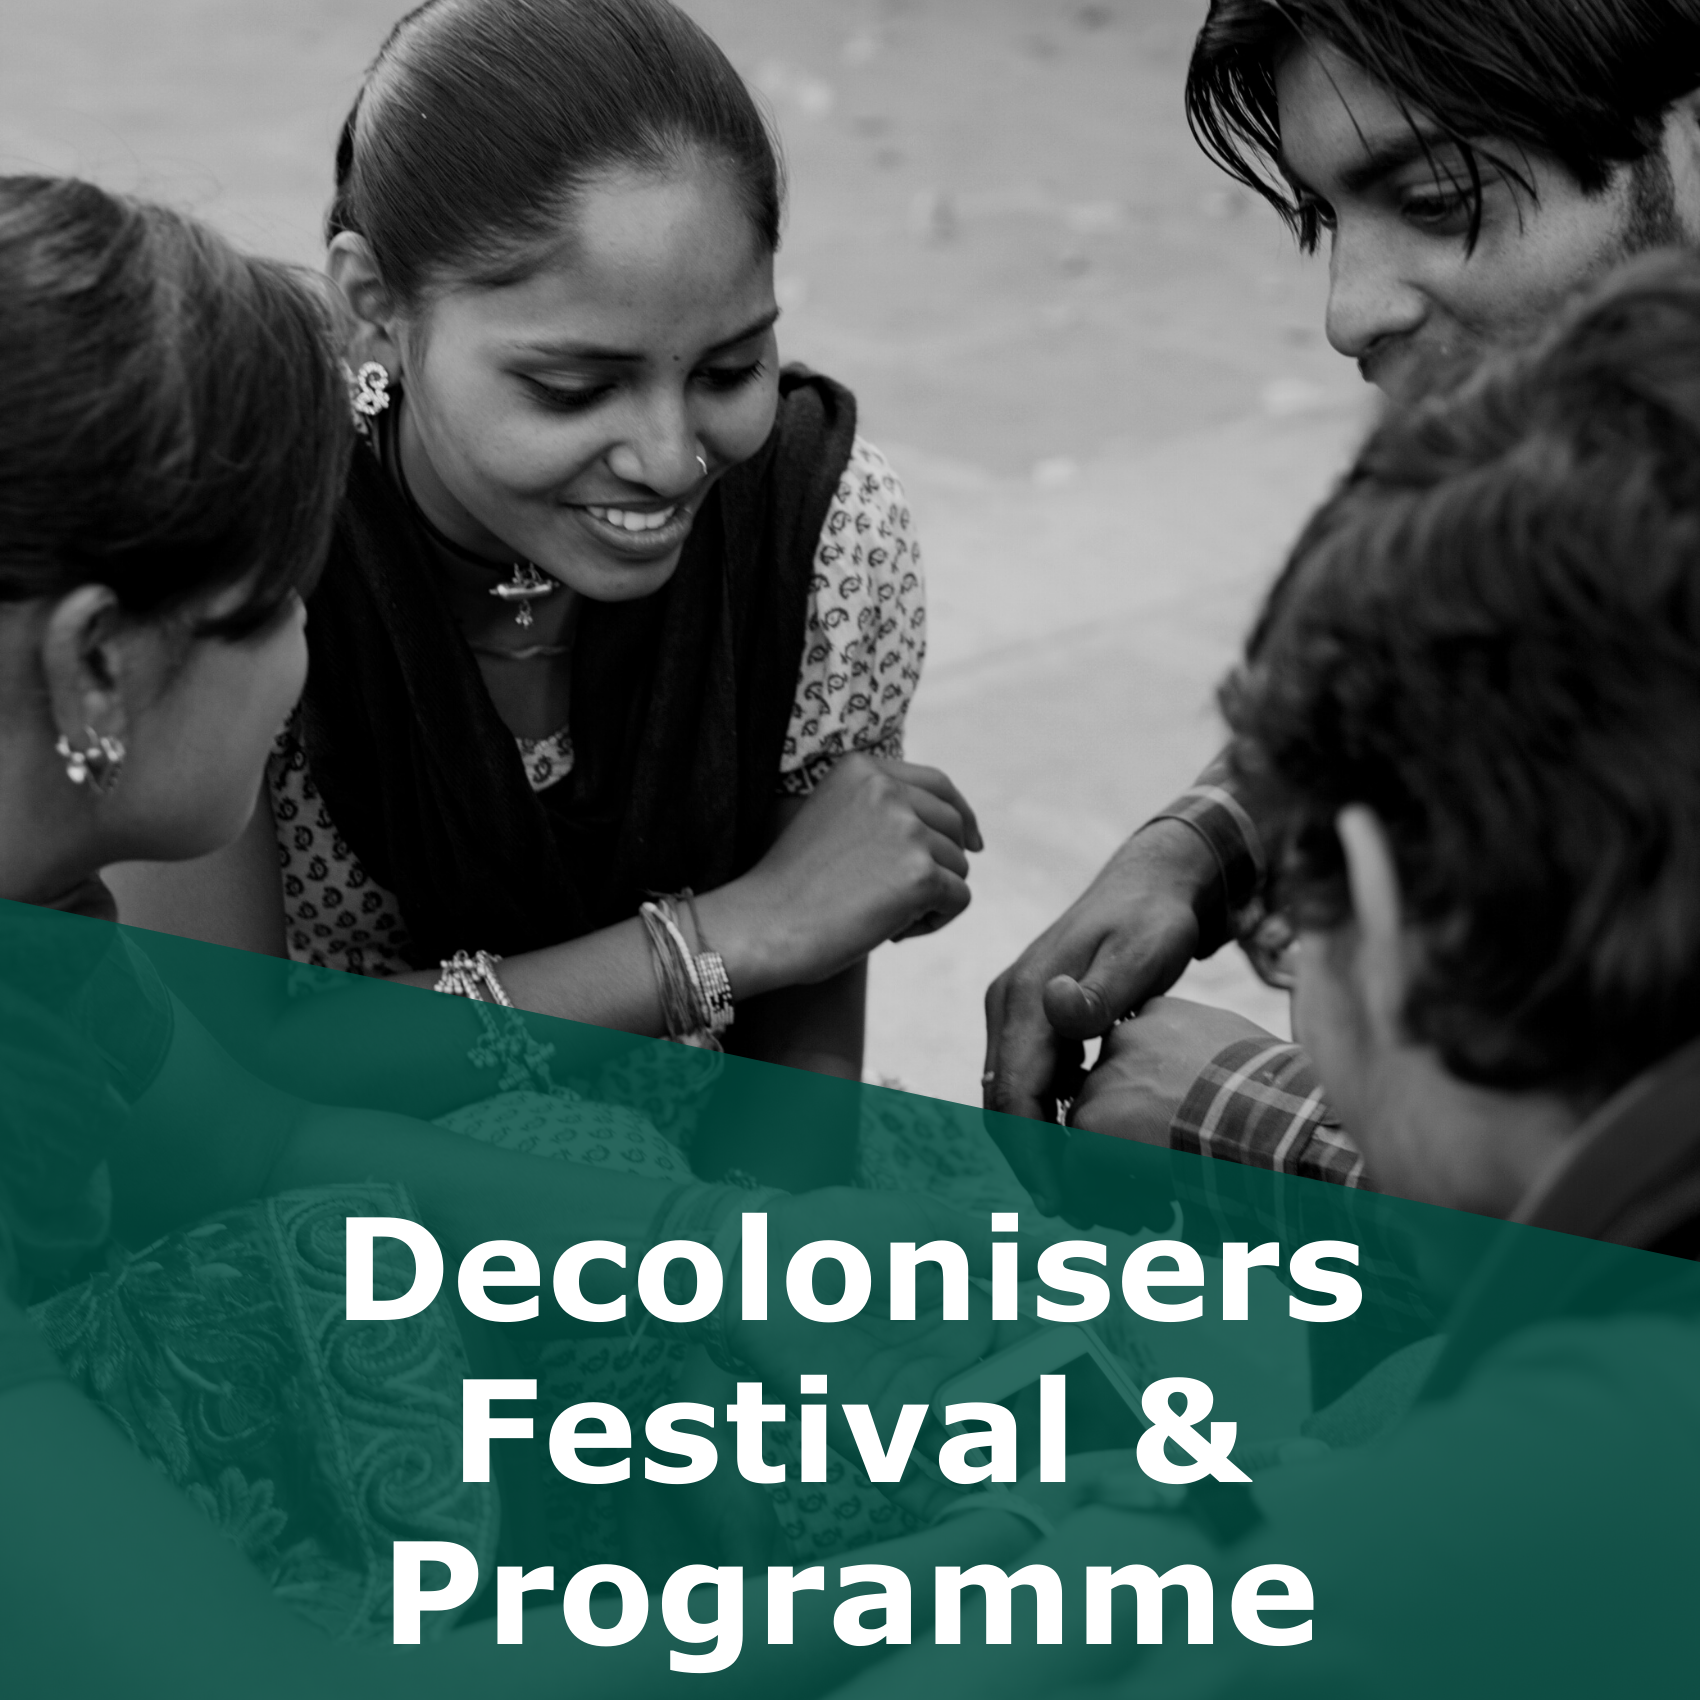 Decolonisers Festival and Programme